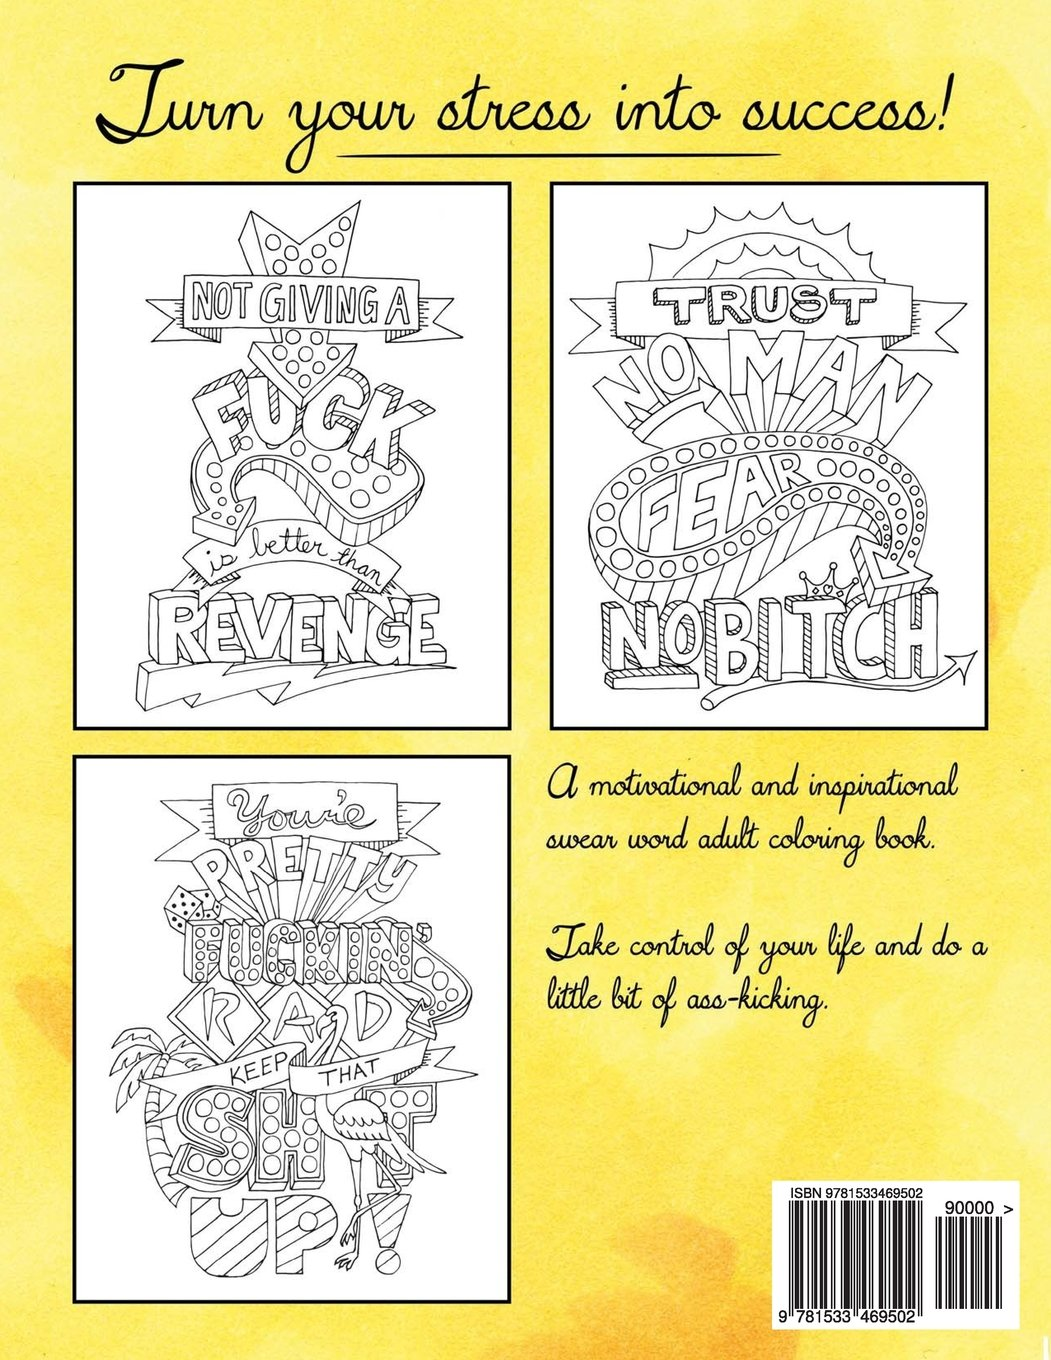 Coloring book inspirational - Amazon Com Make Life Your Bitch A Motivational Inspirational Adult Coloring Book Turn Your Stress Into Success And Color Fun Typography